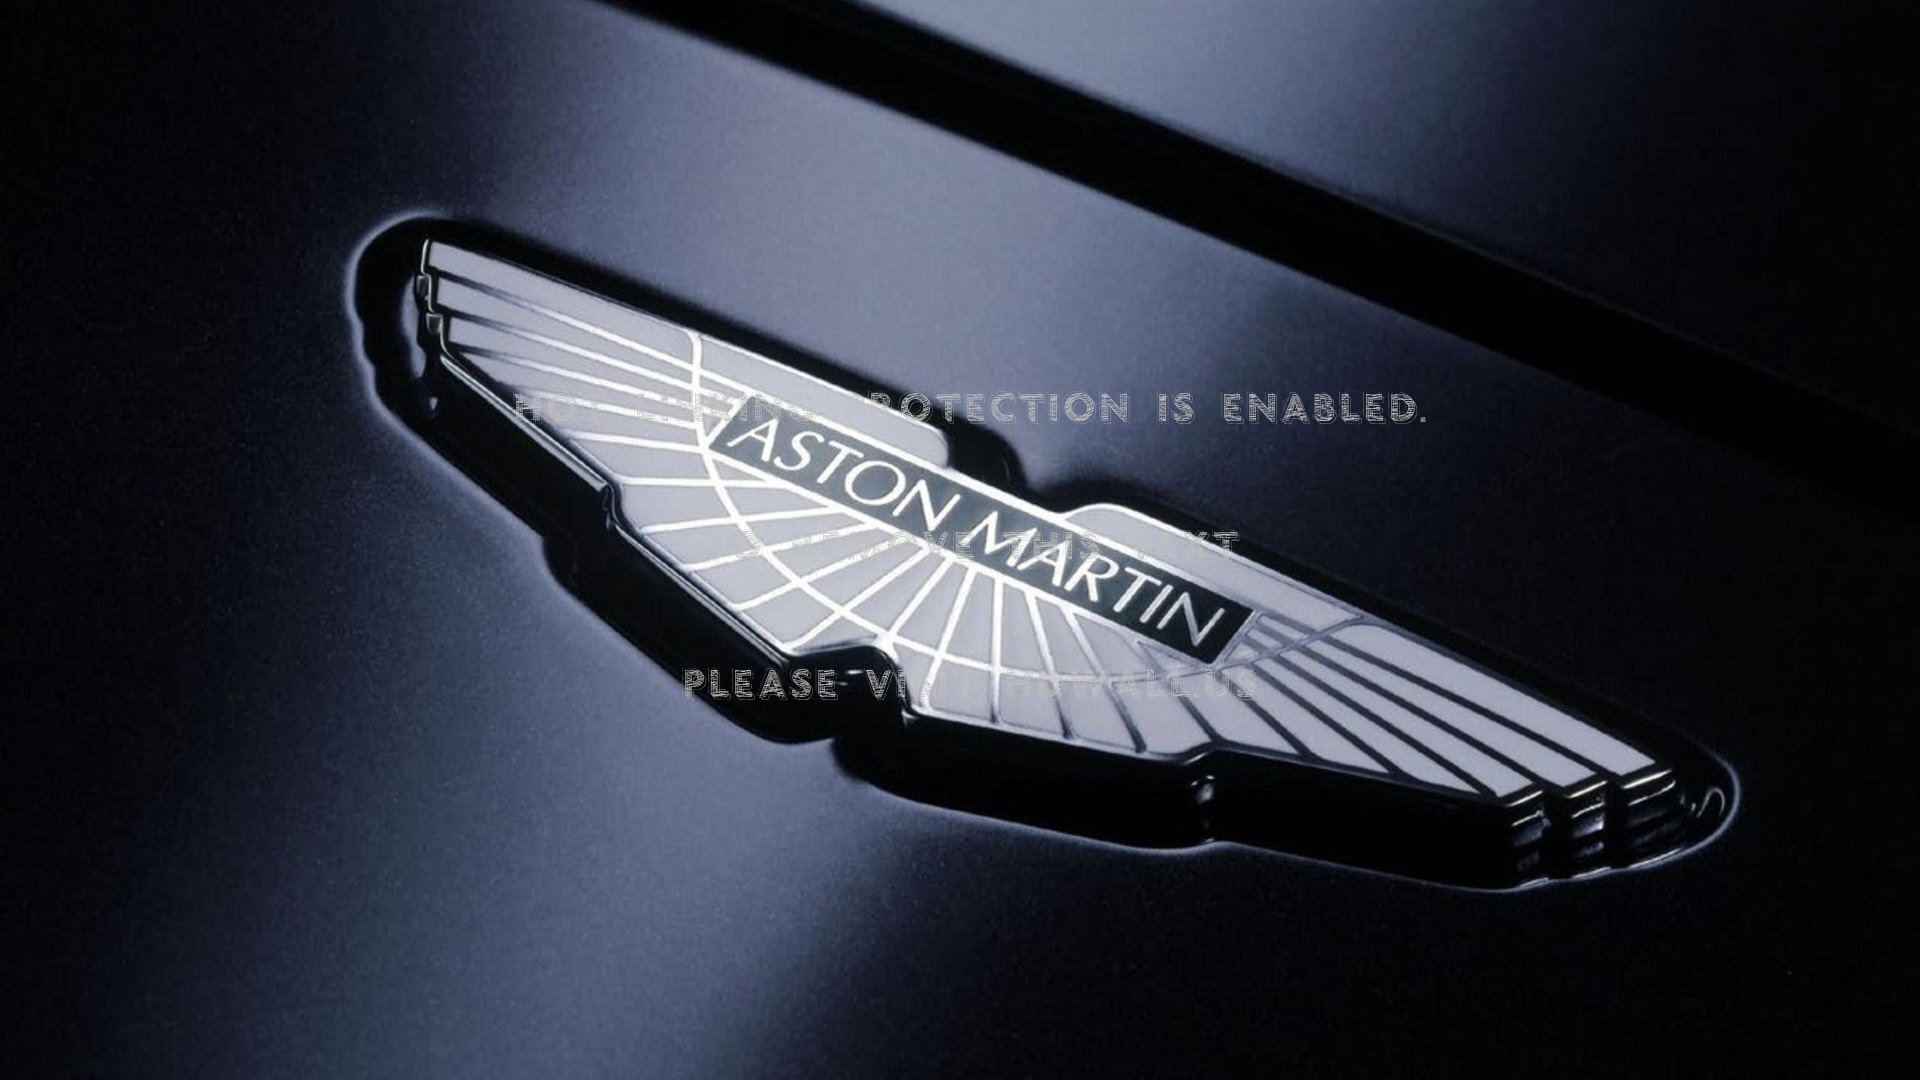 Latest Cars Aston Martin Emblems Logos Free Download